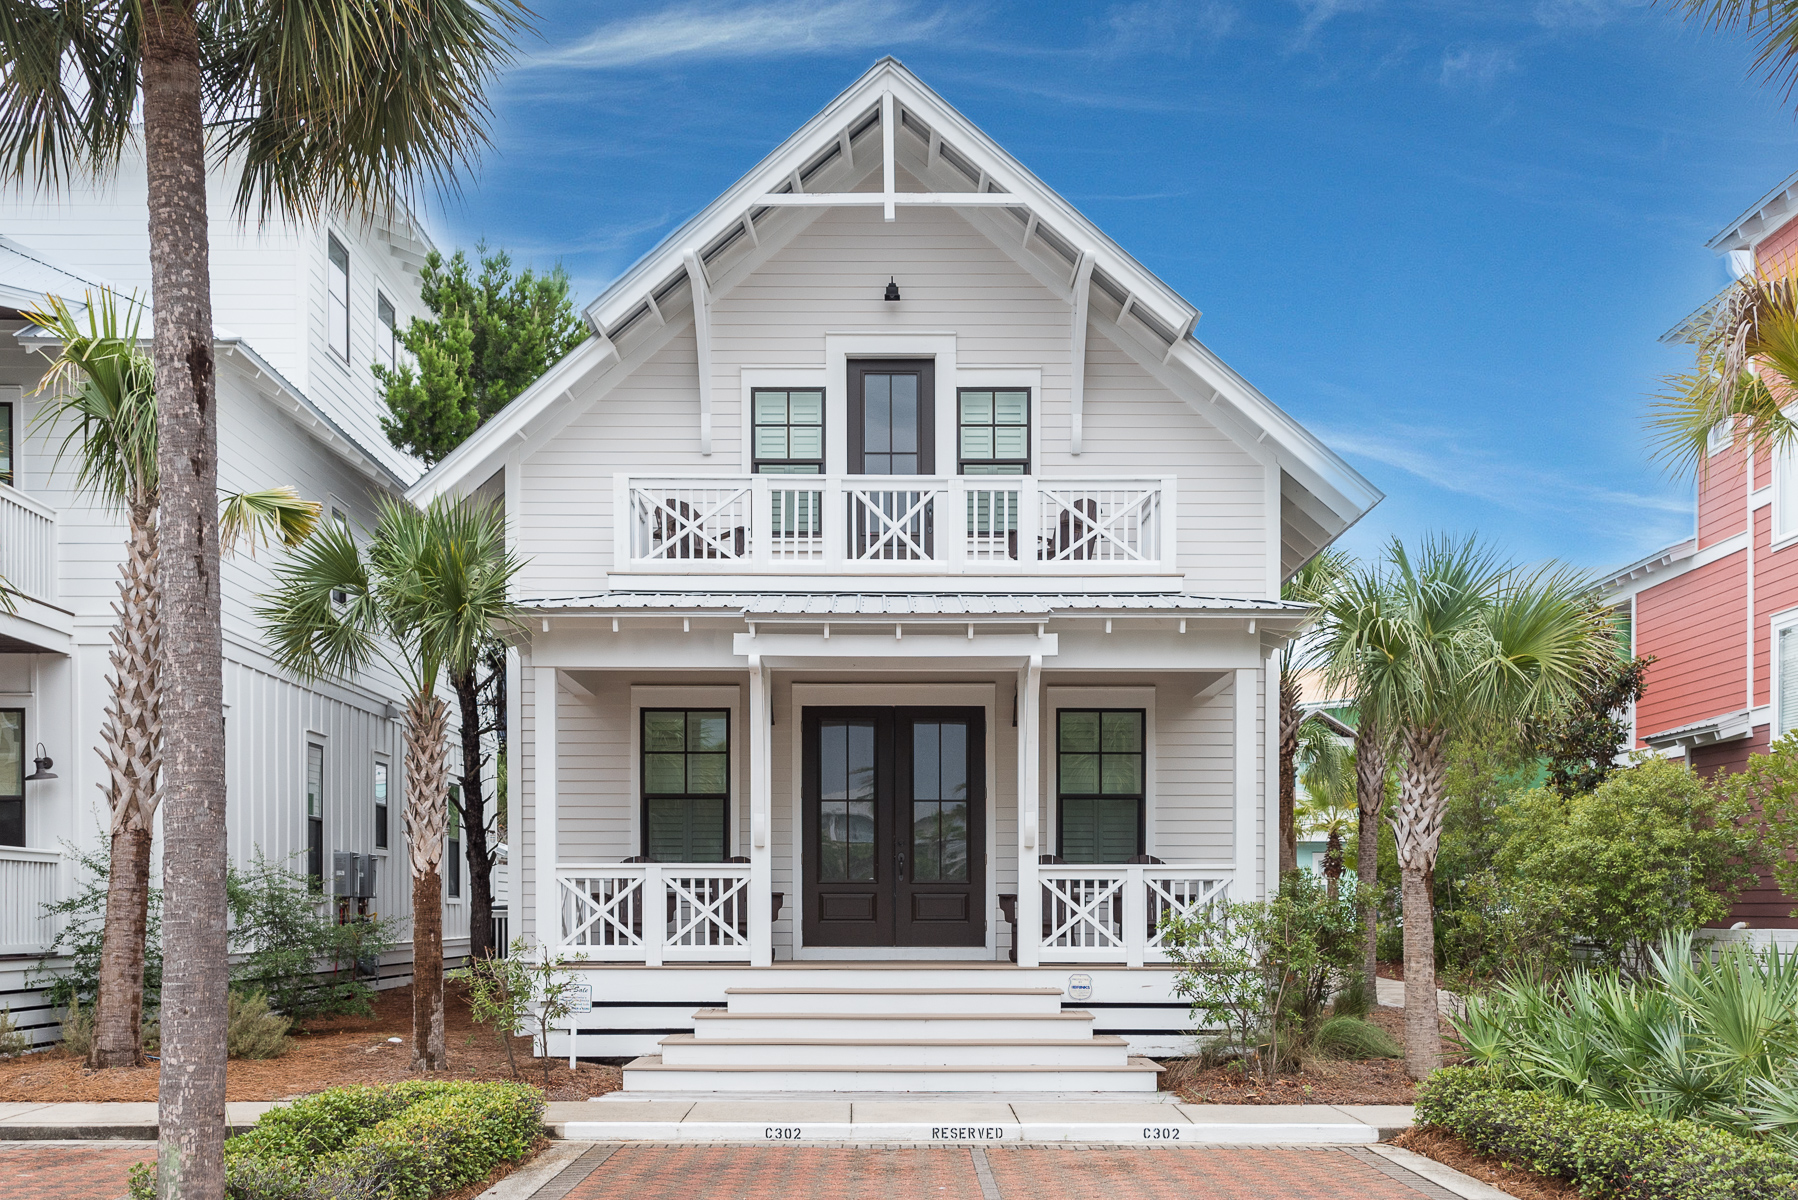 Maison unifamiliale pour l Vente à THOUGHTFULLY DESIGNED AND BEAUTIFULLY FURNISHED BEACH HOME 46 Seacrest Beach Boulevard E Inlet Beach, Florida, 32461 États-Unis